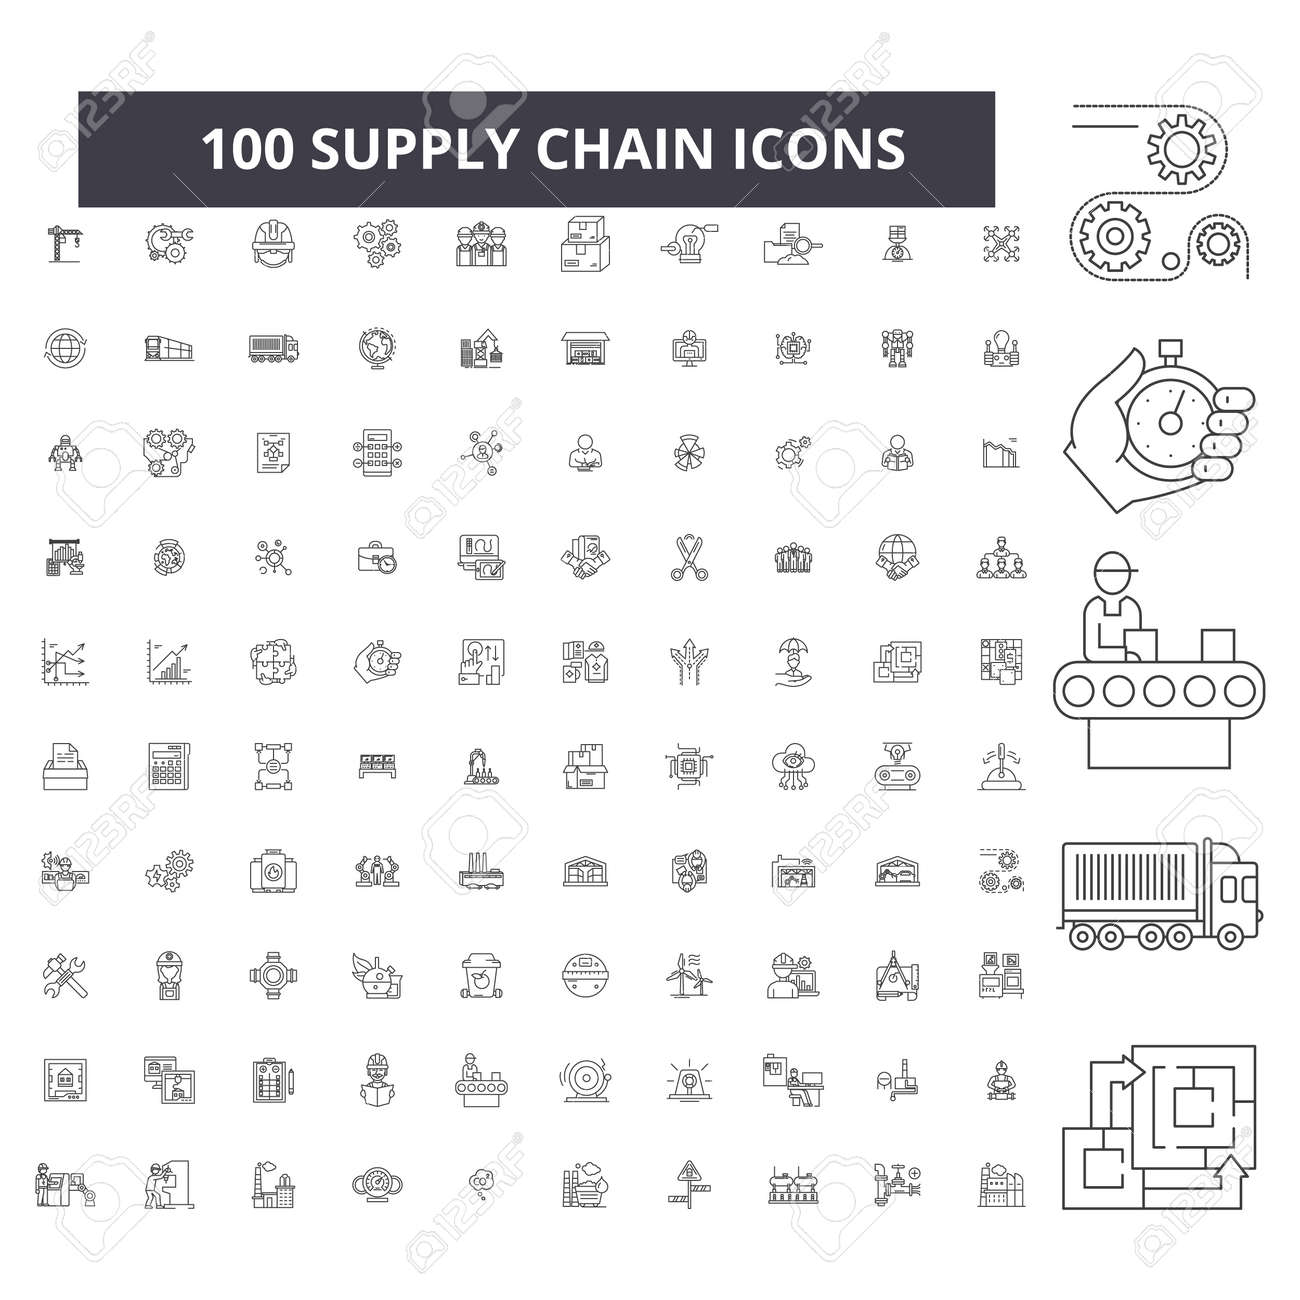 Supply chain editable line icons, 100 vector set on white background. Supply chain black outline illustrations, signs, symbols - 116430940